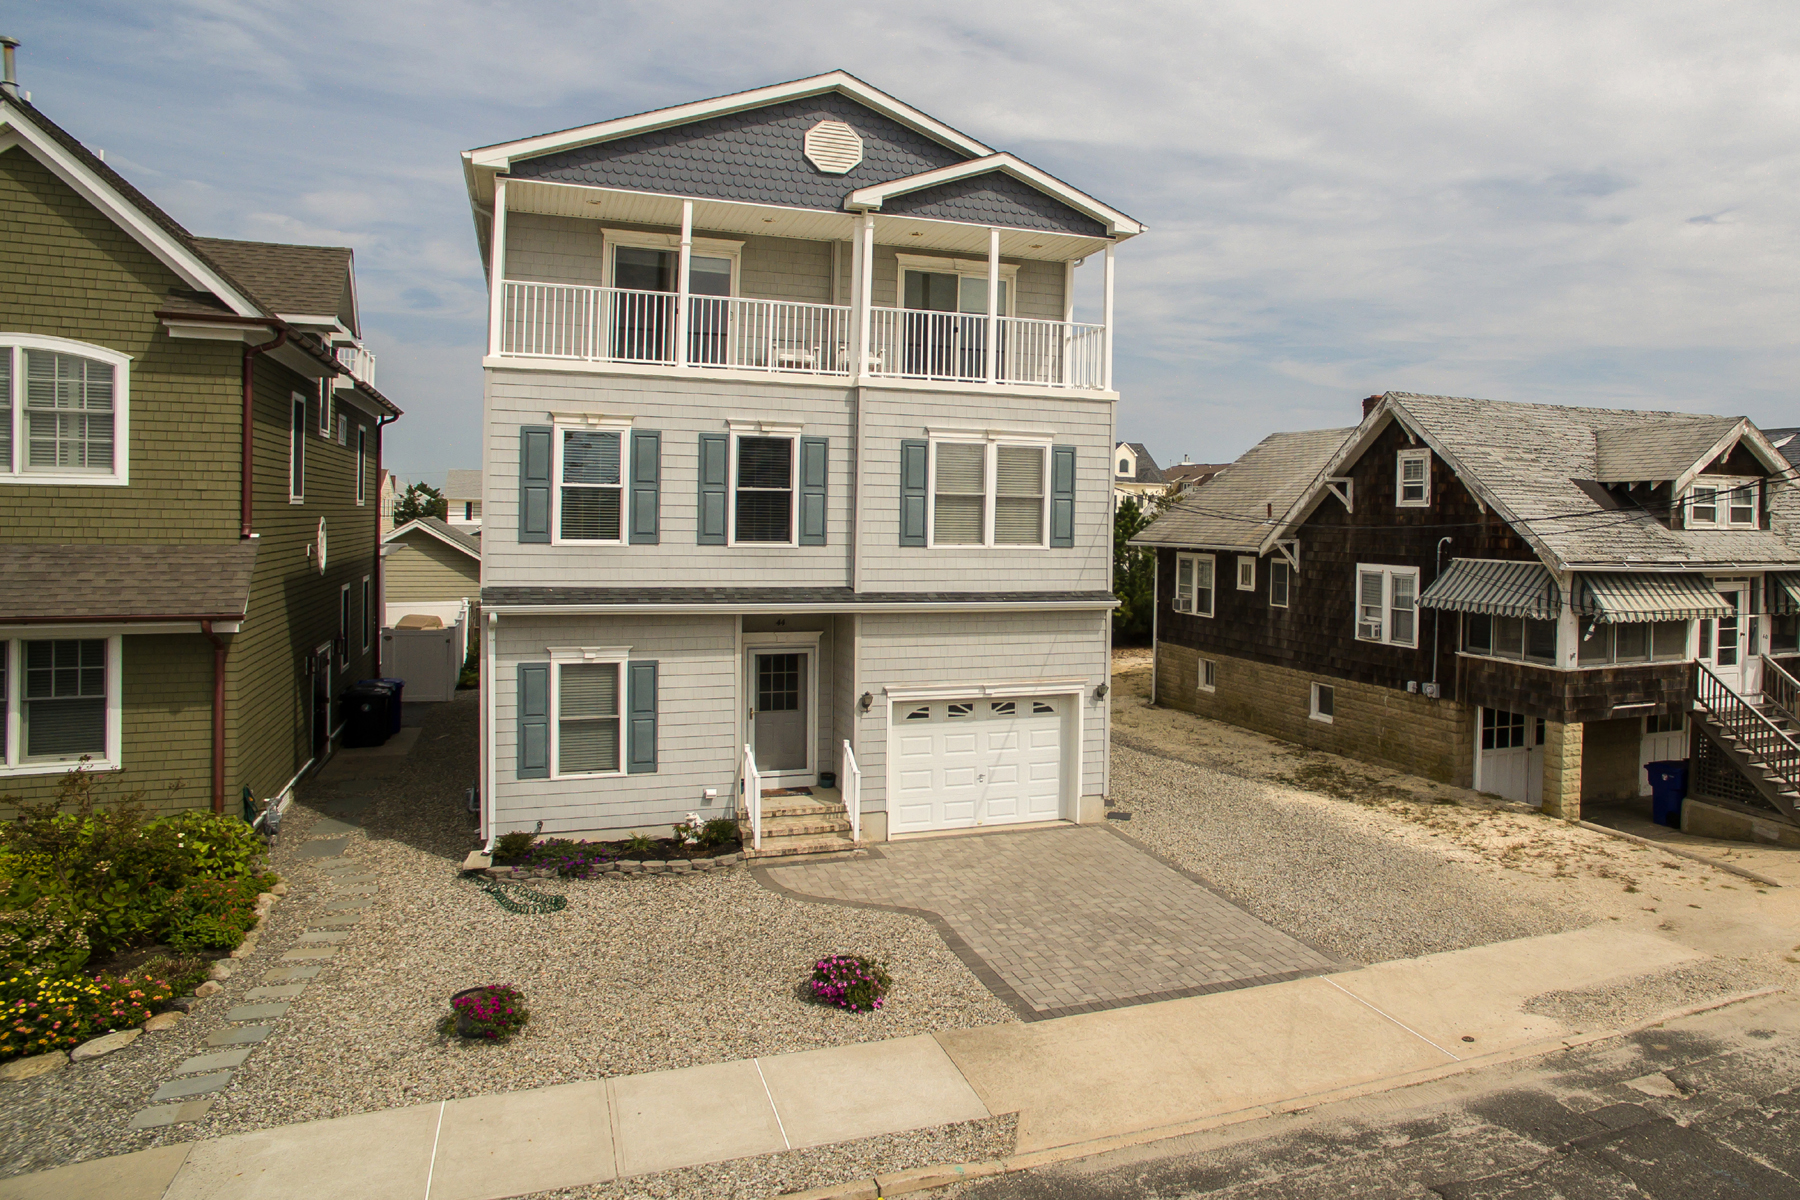 Single Family Home for Sale at Custom Built Ocean Block Home 44 3rd Ave Normandy Beach, New Jersey 08739 United States